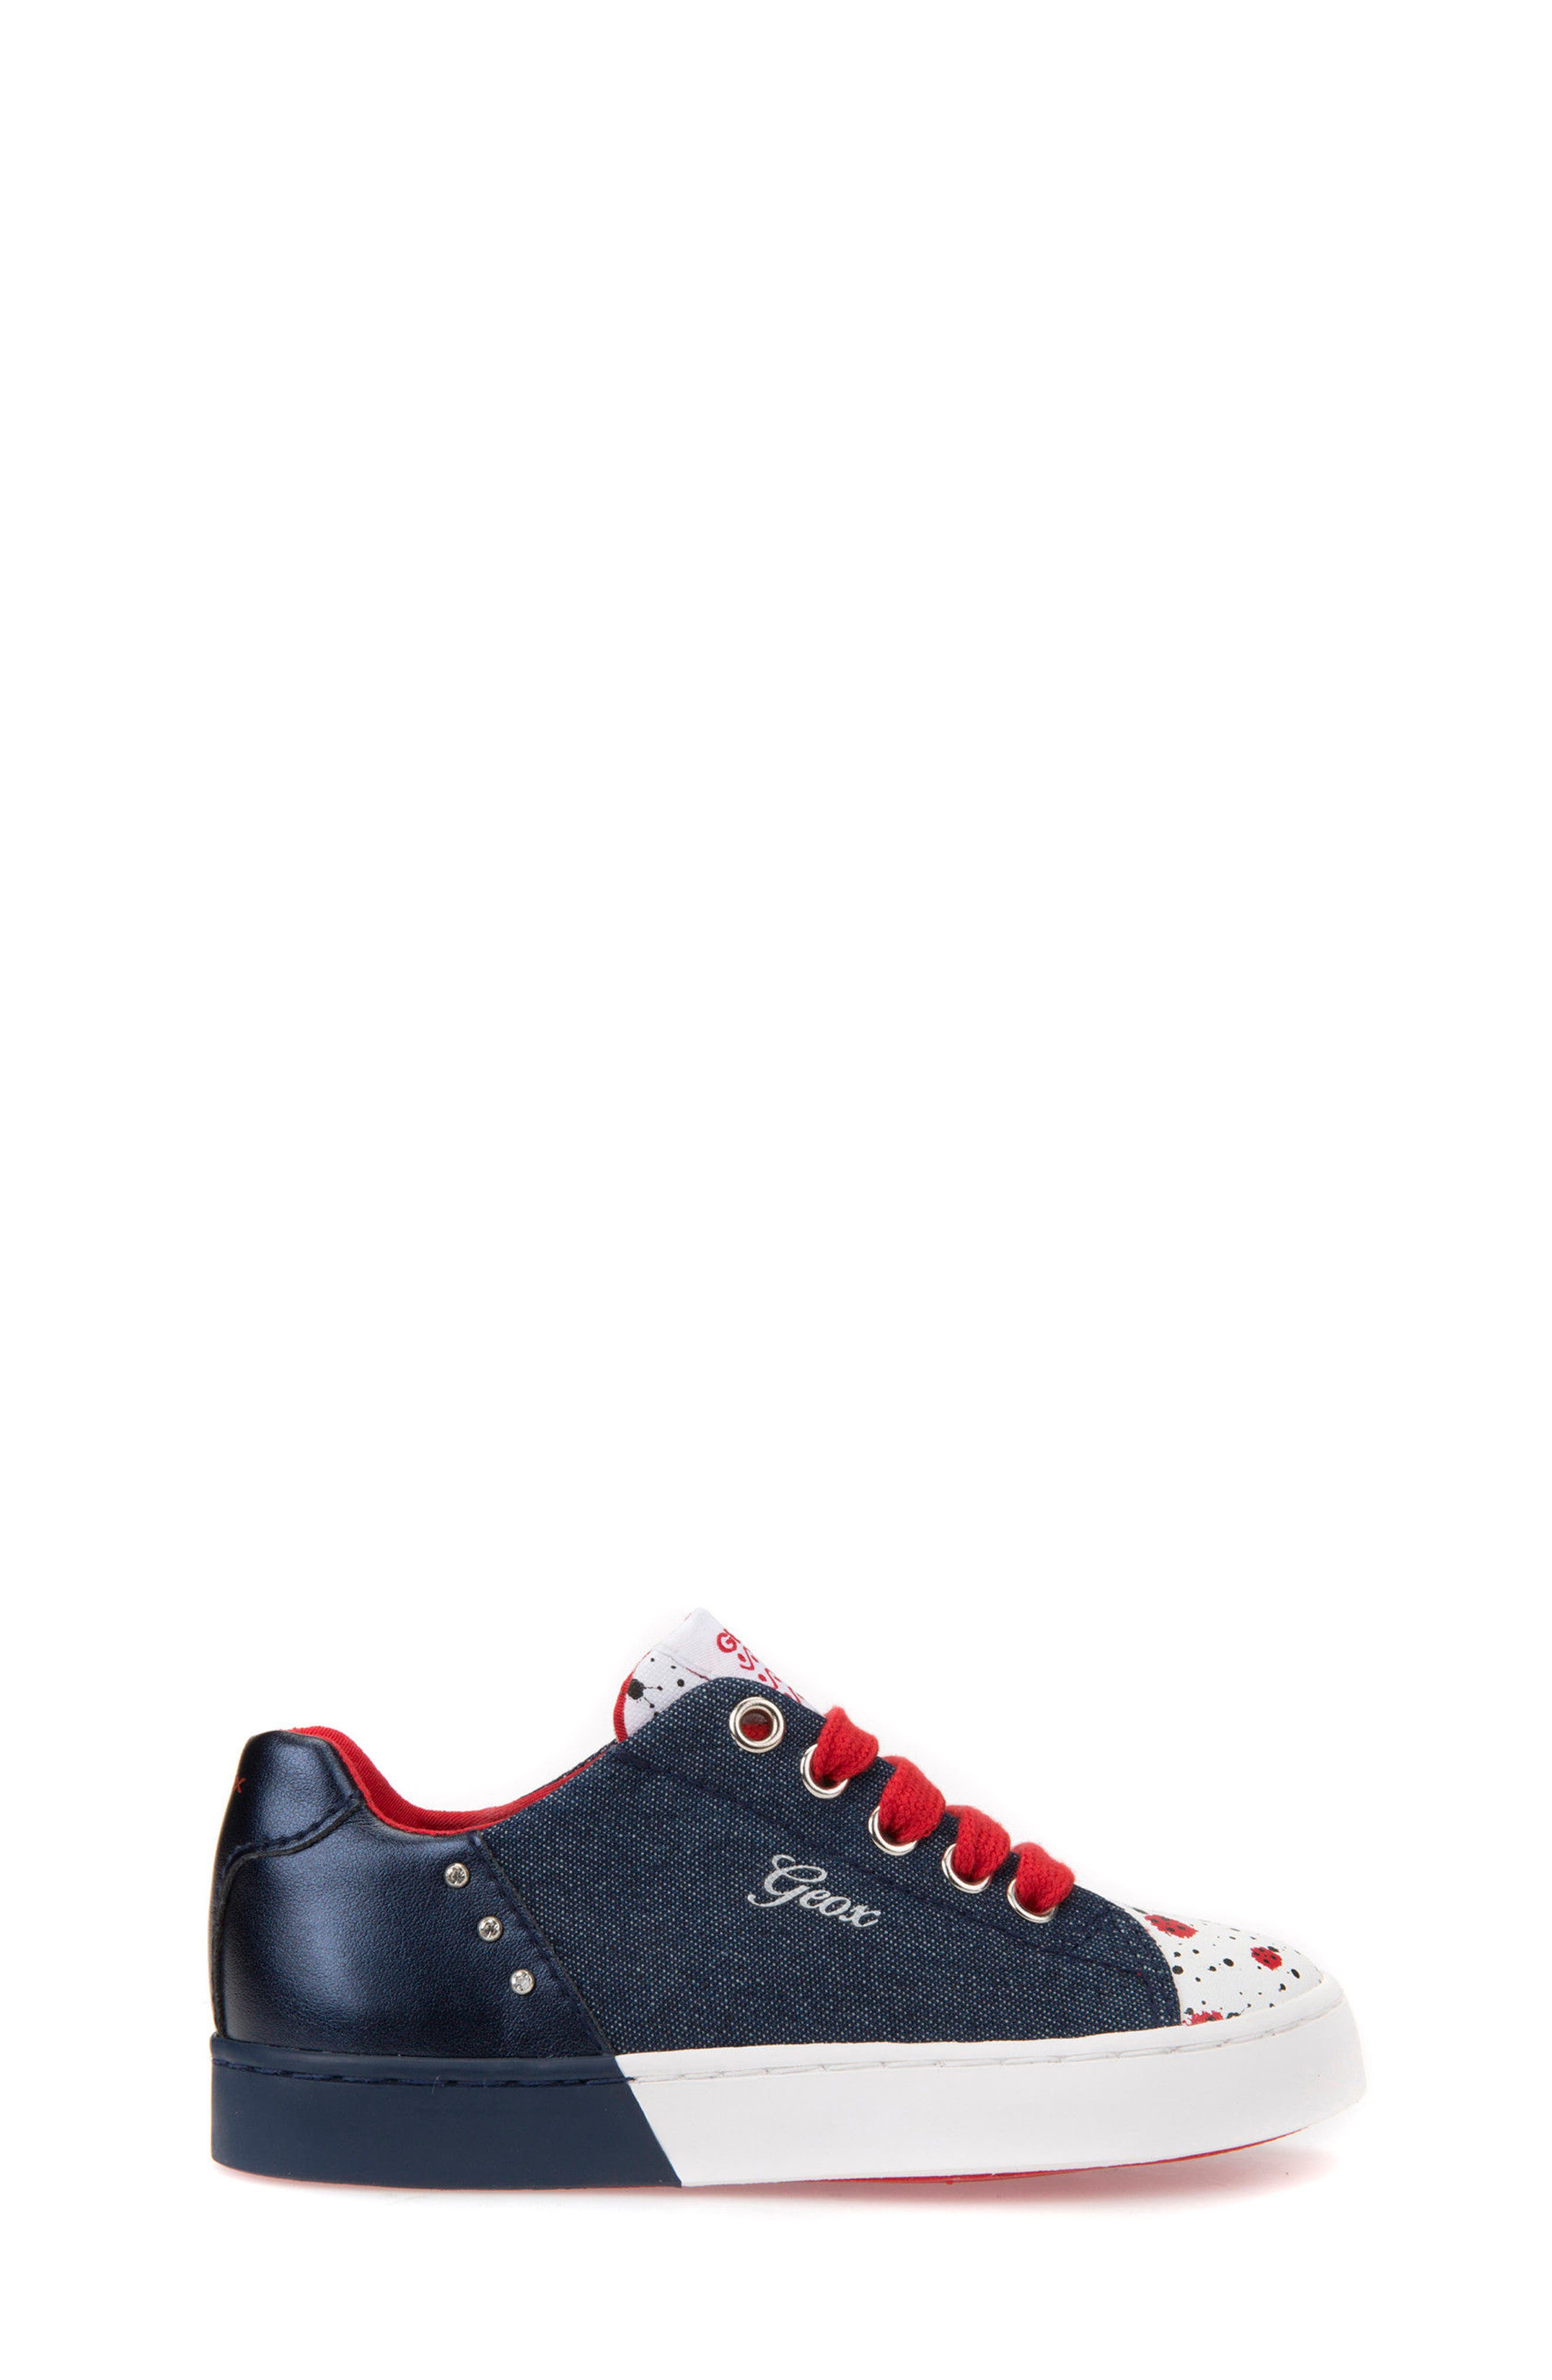 Ciak Low Top Sneaker,                             Alternate thumbnail 3, color,                             Jeans/ Navy